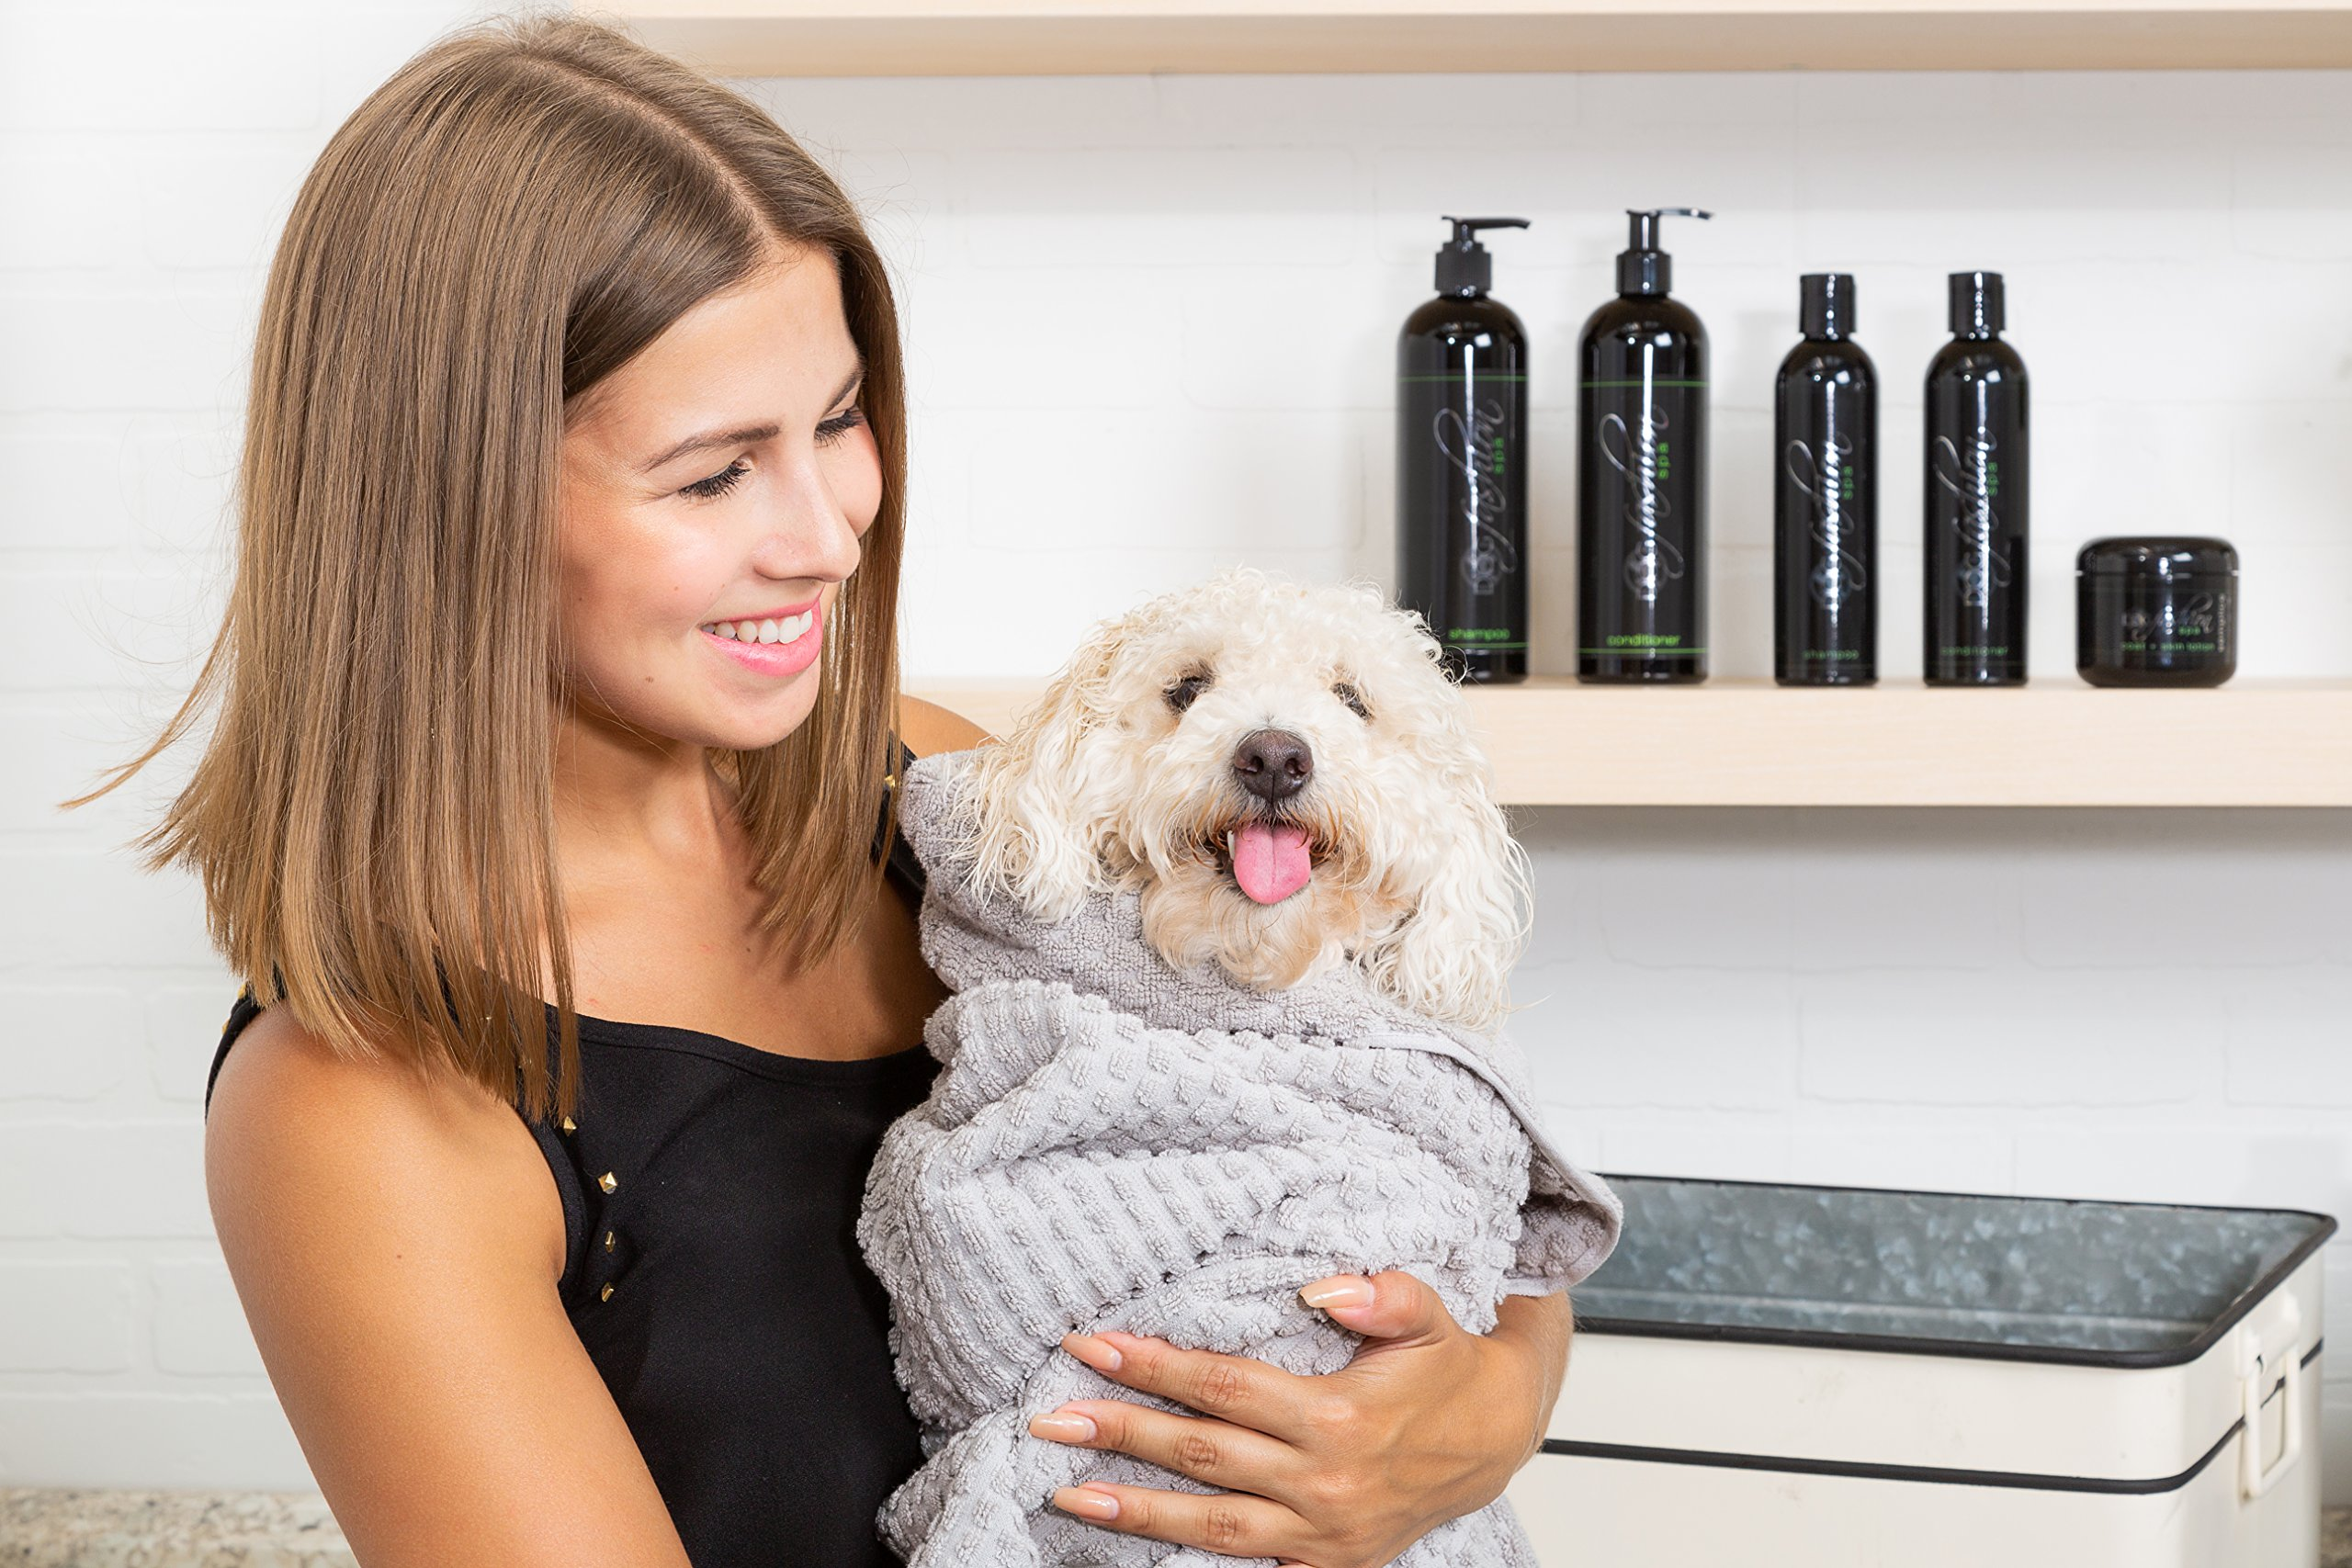 Dog Fashion Spa Dog Shampoo by Moisturize and Nourish Your Pet's Skin with Aloe and Chamomile - Great Toxin-Free Pet Shampoo for Puppies, Senior Dogs, Small and Large Dogs - Made in USA - 1 Gallon